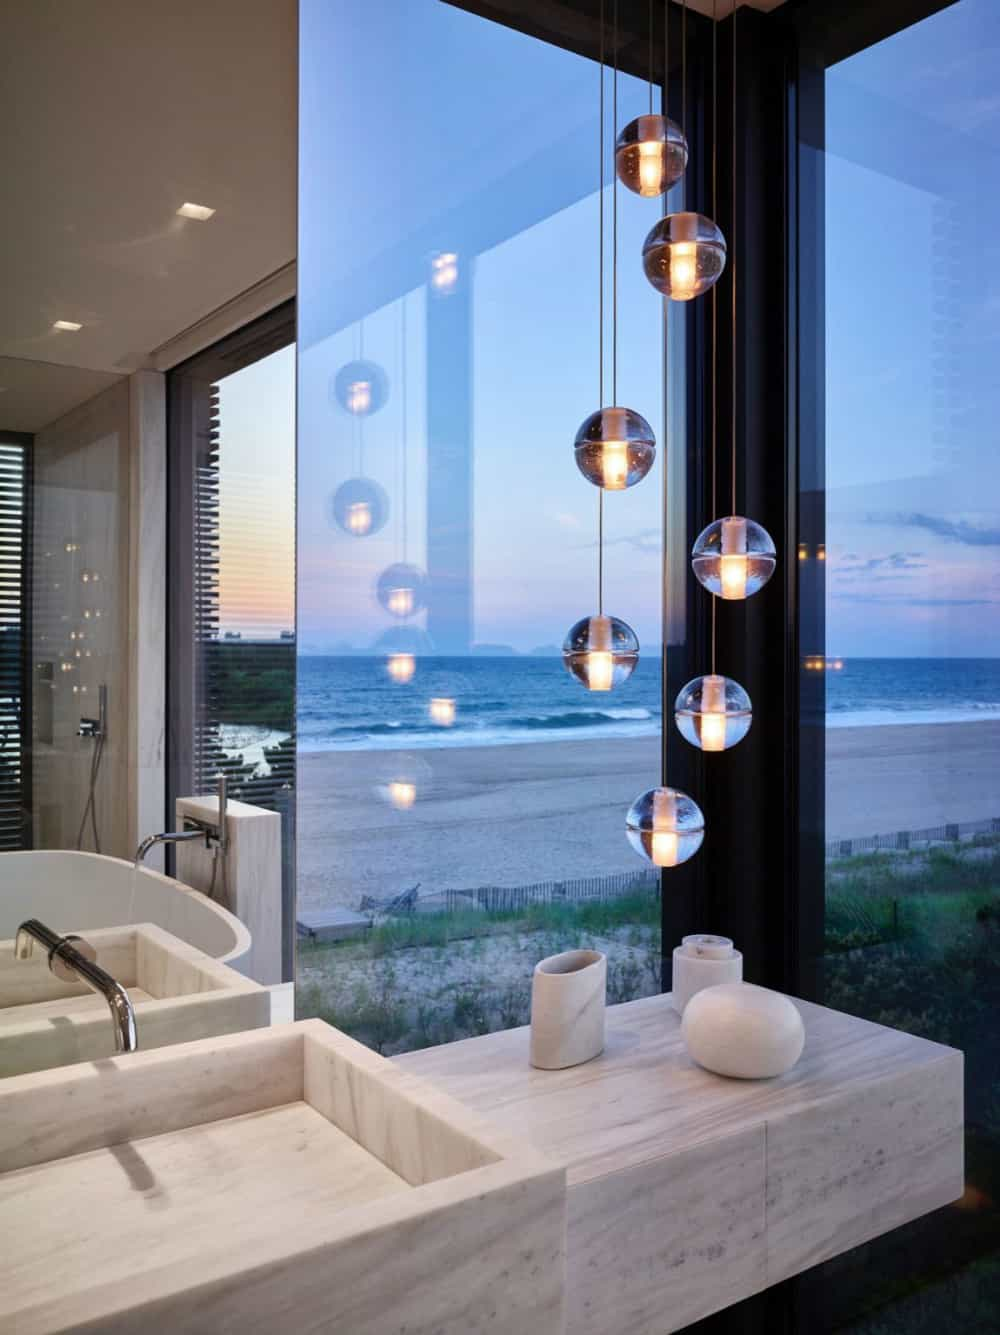 Clustered pendants add a luxury touch to the bathroom